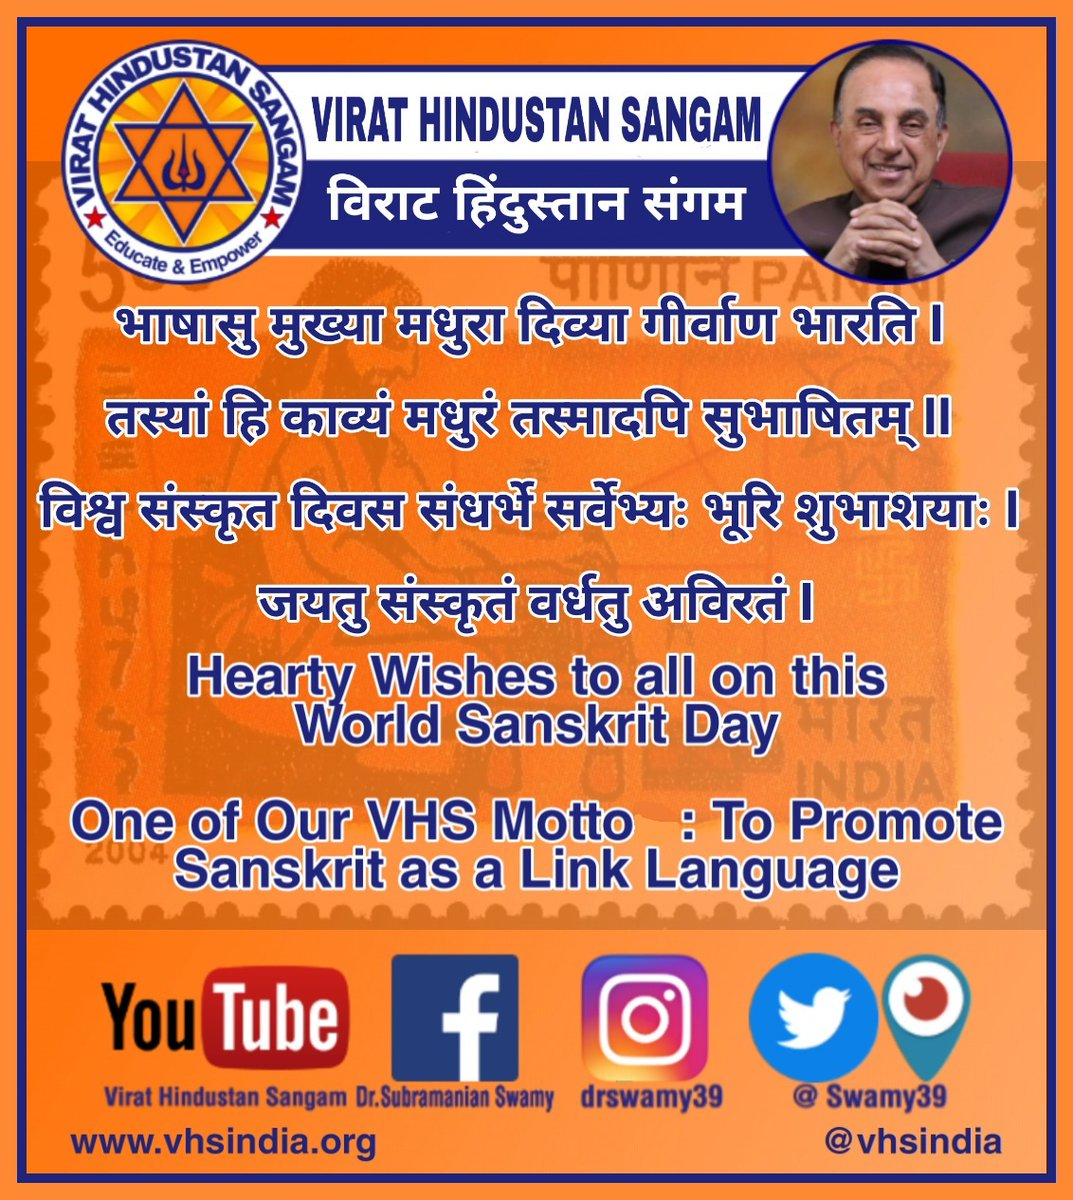 Dr.@Swamy39 Ji, On the occassion of World Sanskrit Day, I request all PTs to work towards making Sanskrit a link language which is also 1 of our @vhsindia's Objectives.🙏🏼  @jagdishshetty @rameshnswamy @vhsindia